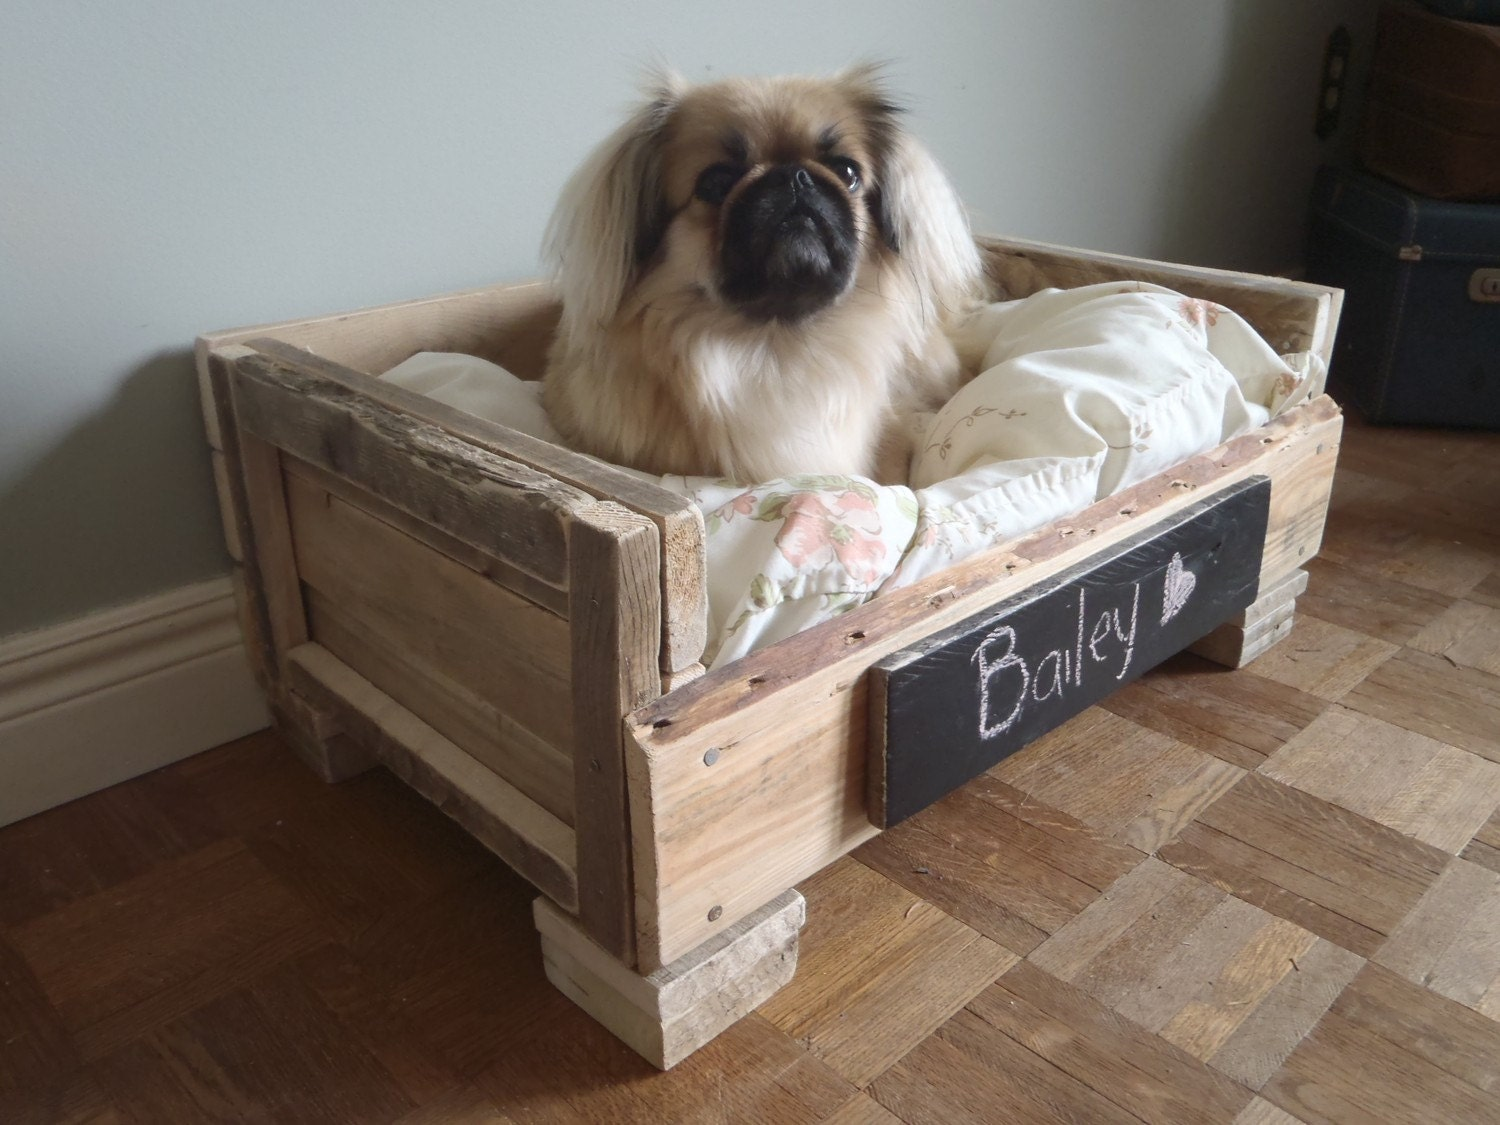 Very Impressive portraiture of RESERVED Reclaimed Wood Pet Bed Natural and by WildandRavenHome with #382C23 color and 1500x1125 pixels